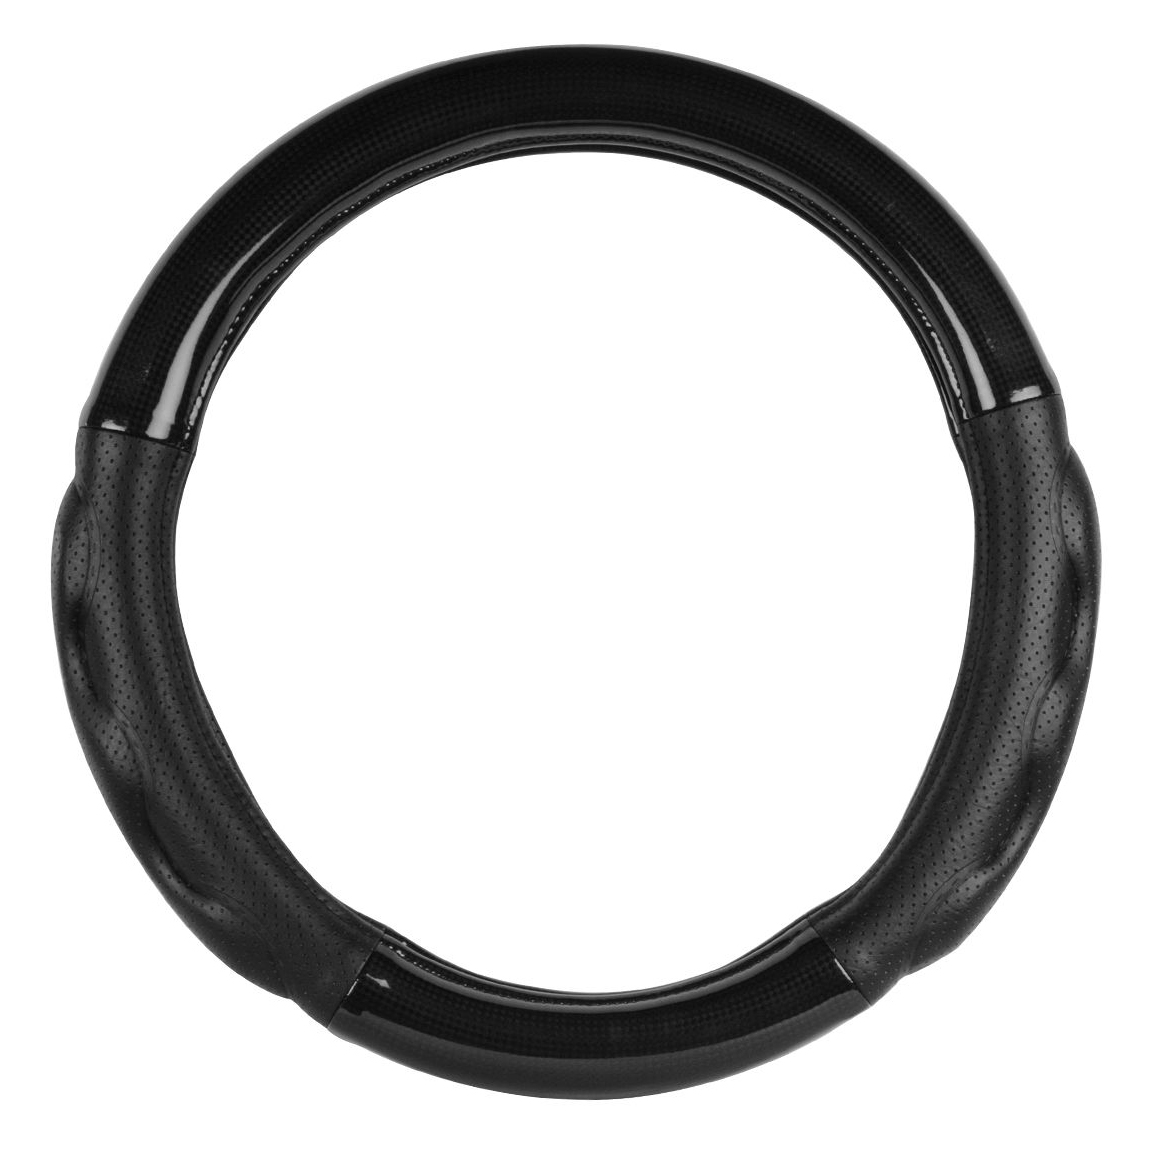 """Heavy Duty Black Carbon Fiber Truck Steering Wheel Cover with Comfort Pads, 18"""""""